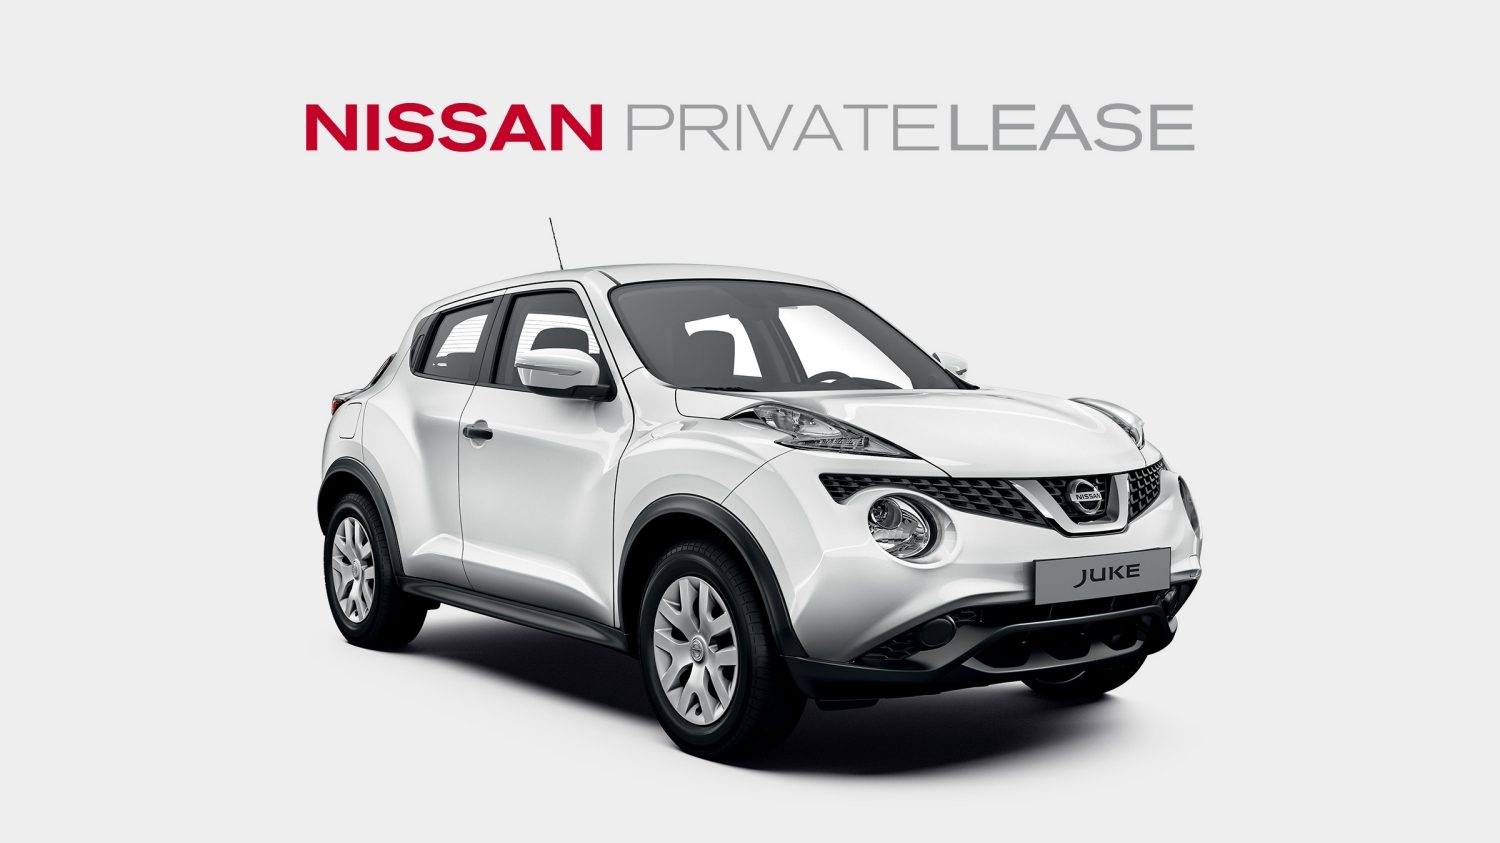 Best Nissan Juke Lease Deals Nissan Private Lease Promoties Eigenaar Nissan